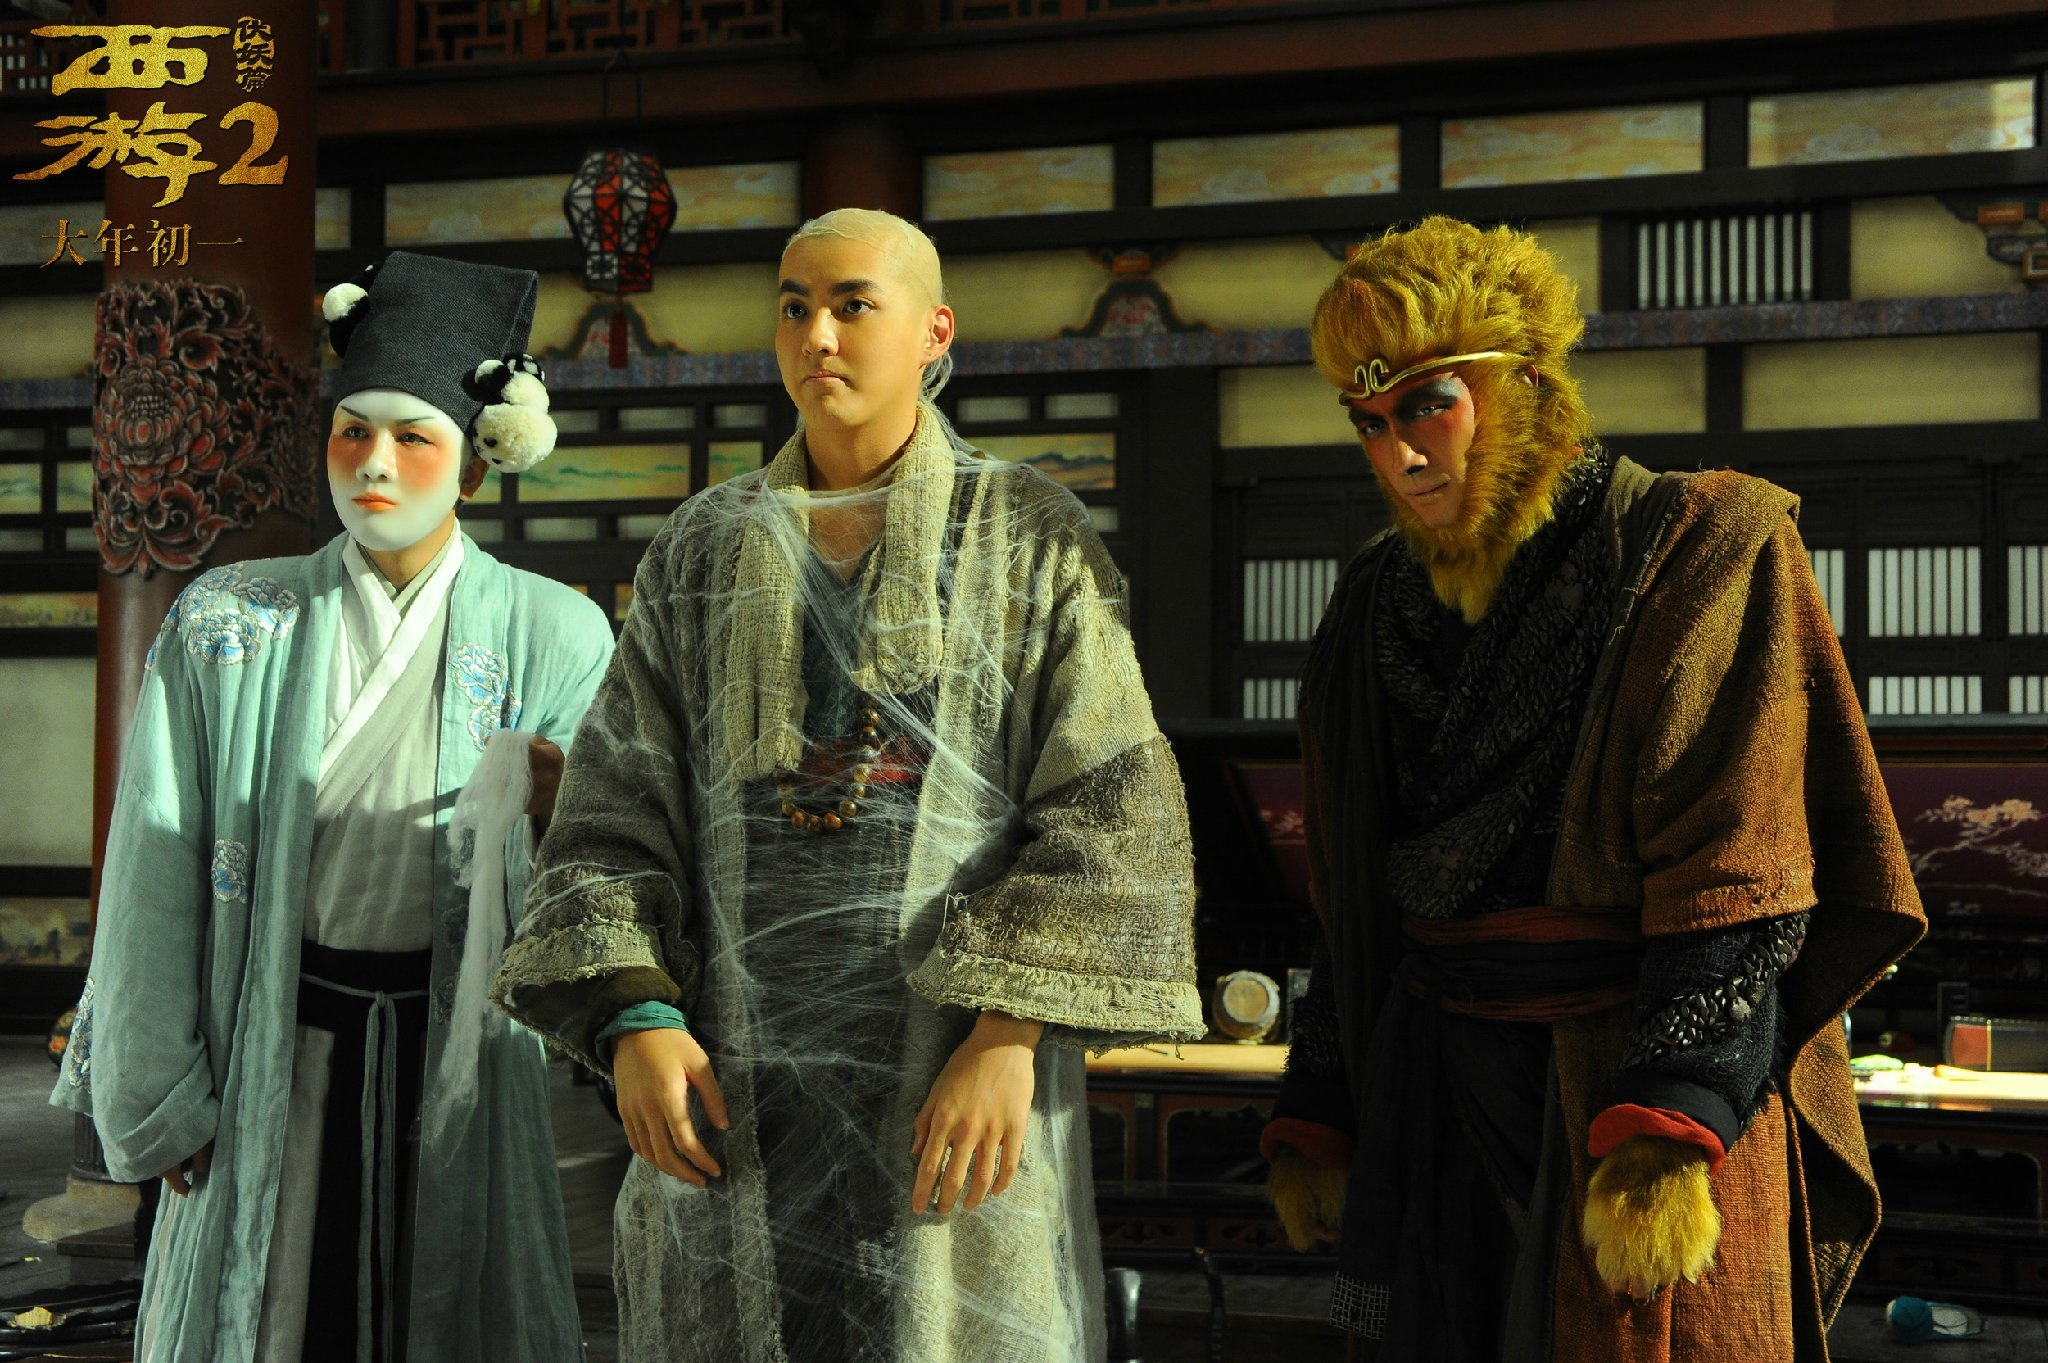 Pigsy (Yang Yiwei) Monk Tang (Kris Wu) and Monkey King (Lin Gengxin) in Journey to the West: Demon Chapter (2017)